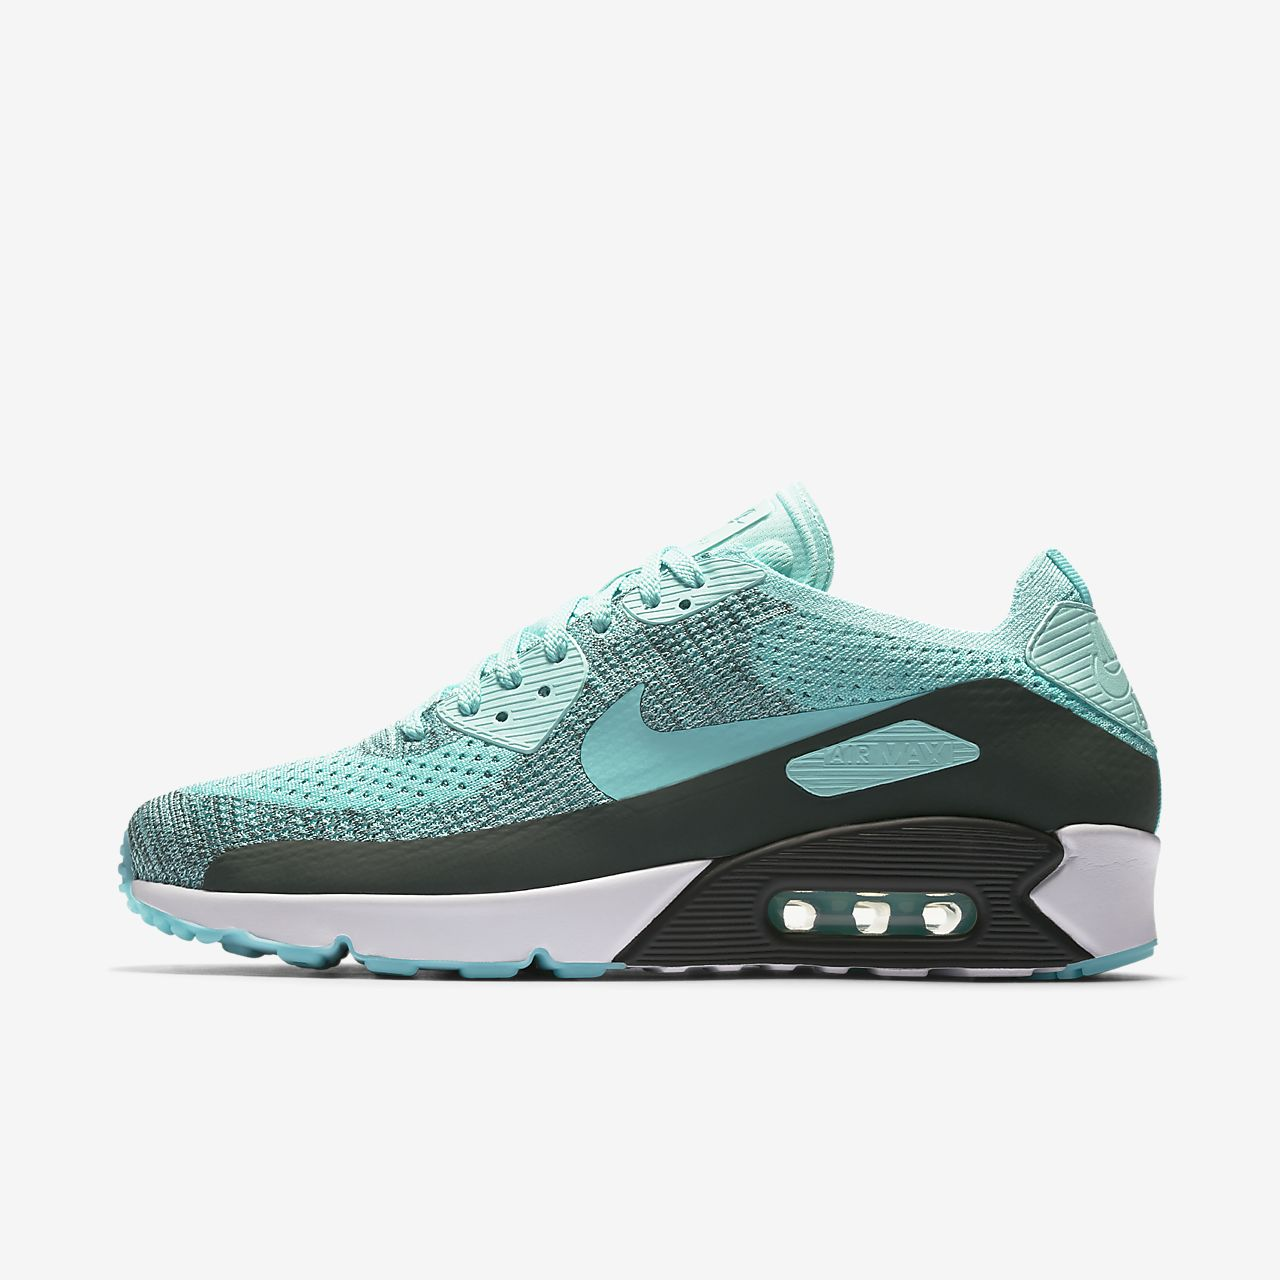 ... Nike Air Max 90 Ultra 2.0 Flyknit Men's Shoe